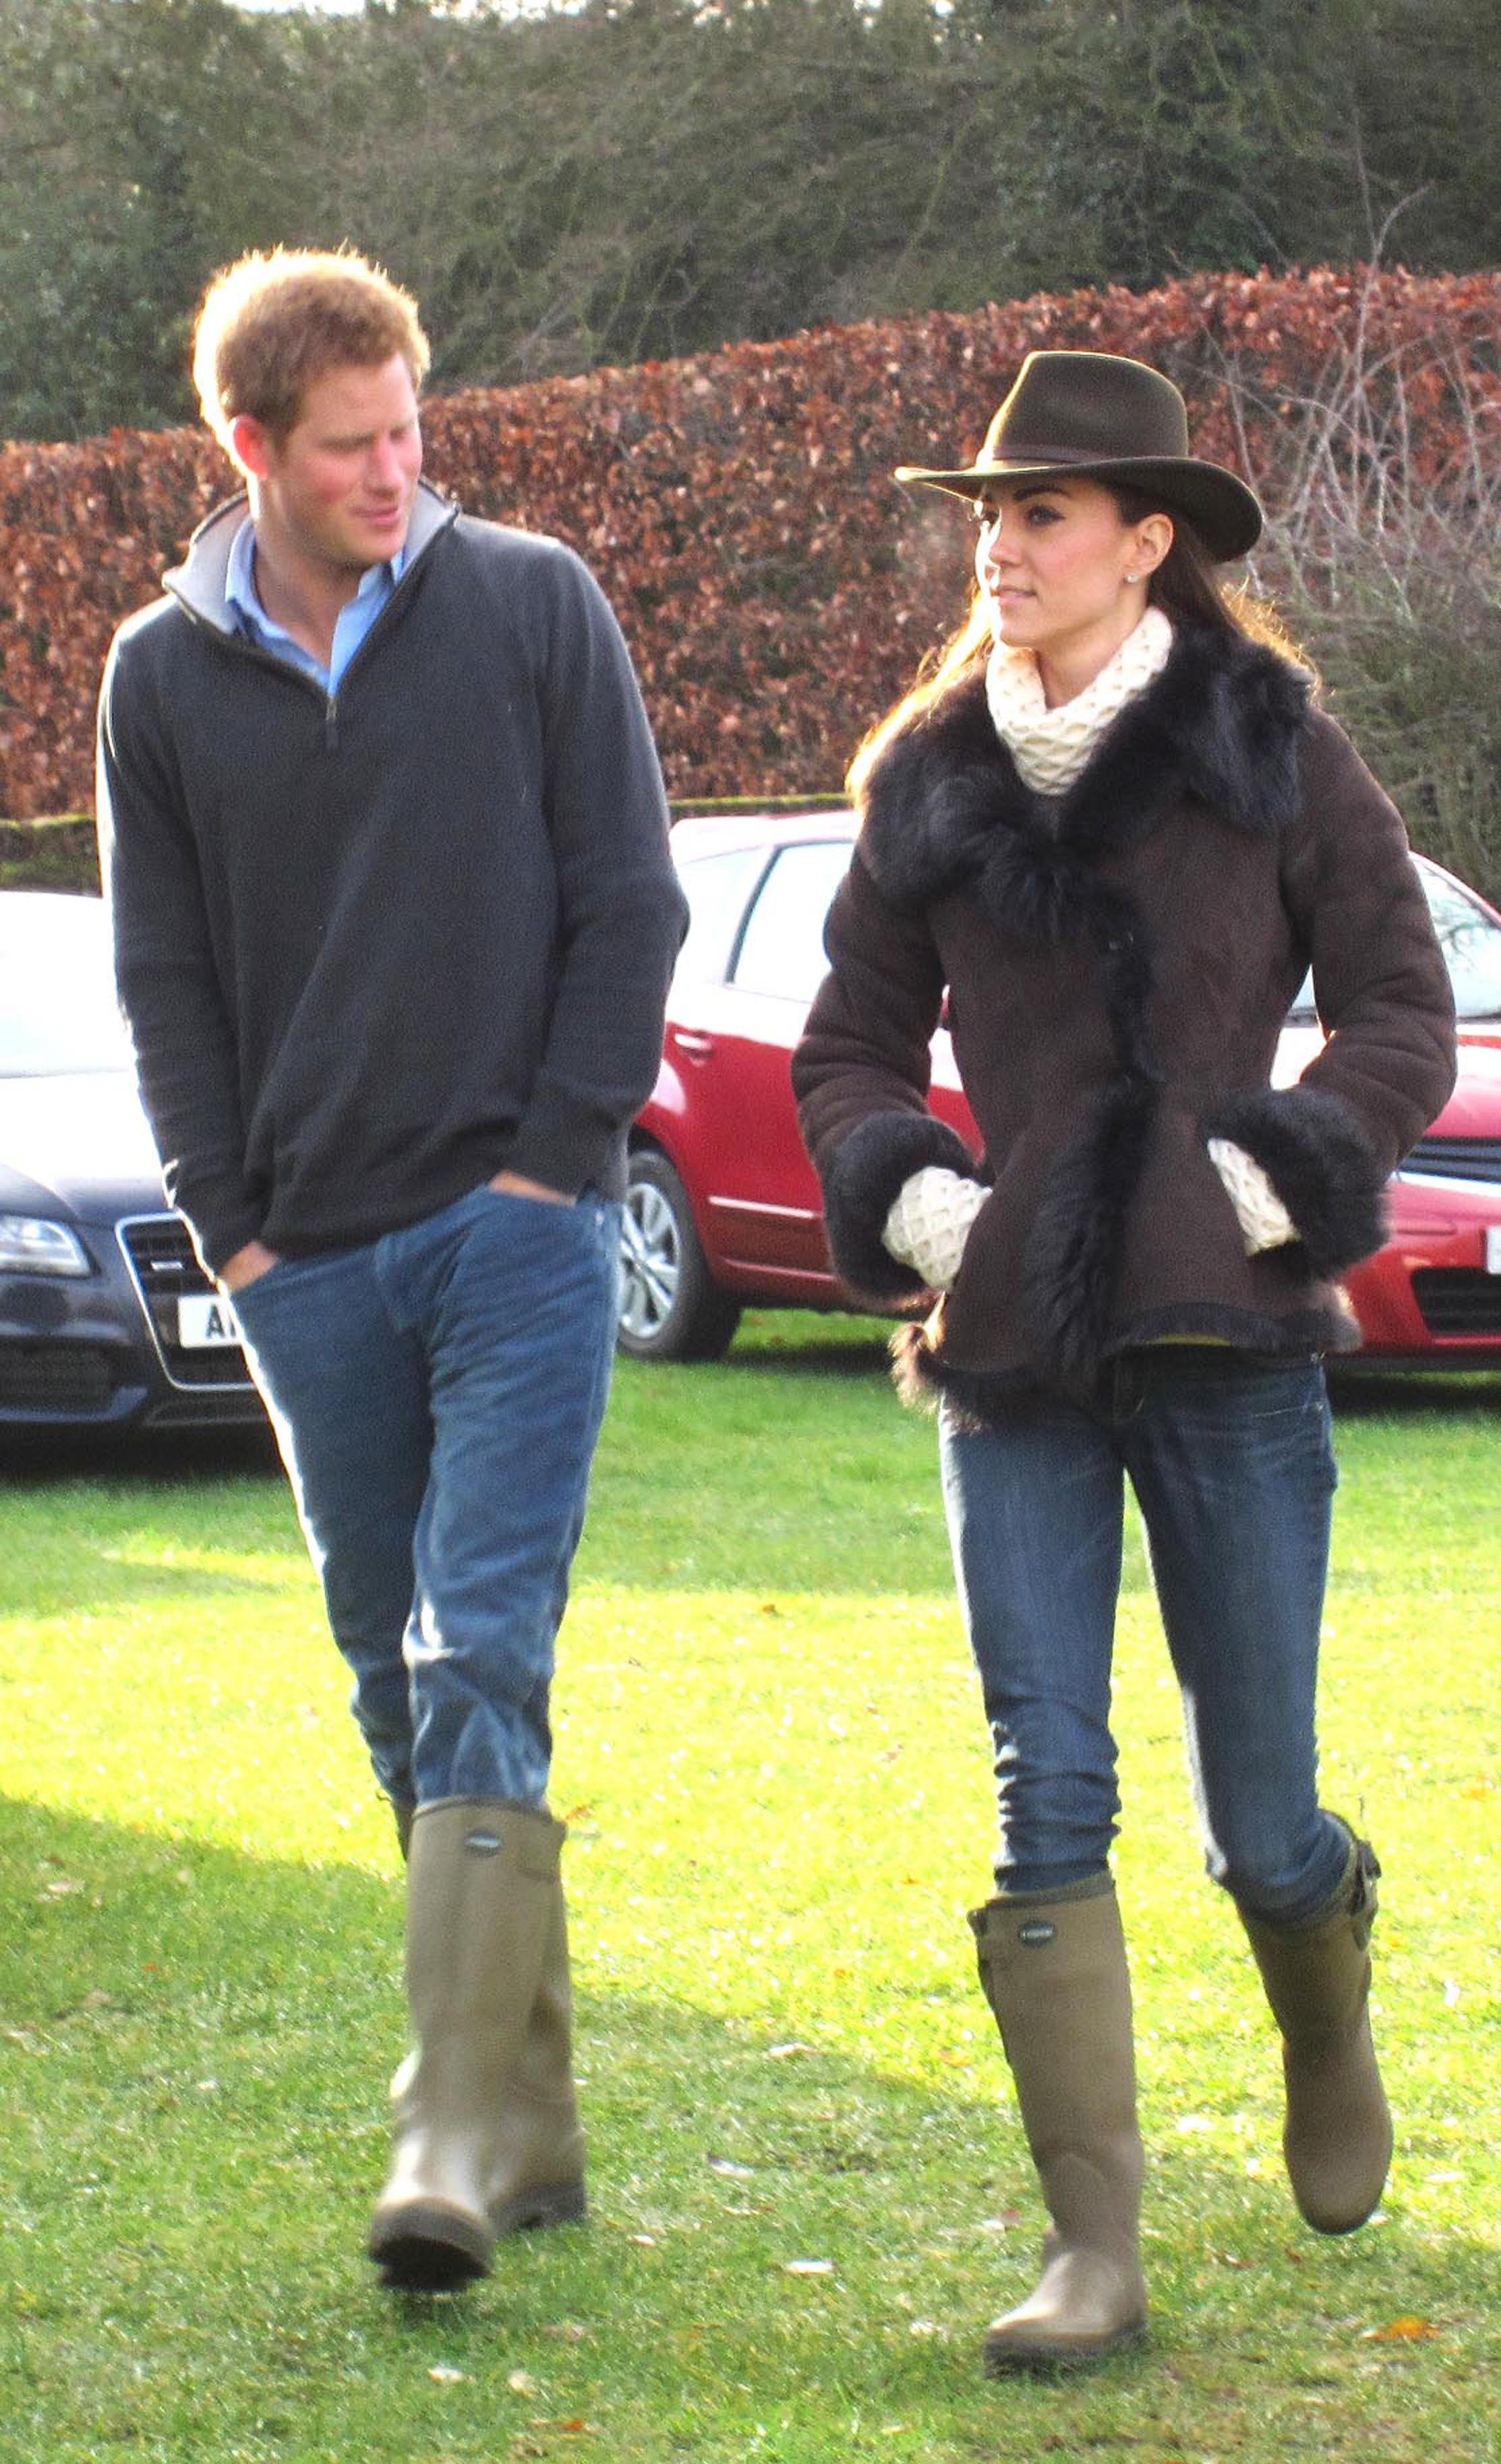 <strong>Matching Mates</strong>                                   On Dec. 24, 2011, the Duchess visited Castle Rising near Sandringham, Norfolk with Prince Harry. Both royals wore Wellington boots to watch Prince William play in a soccer match.